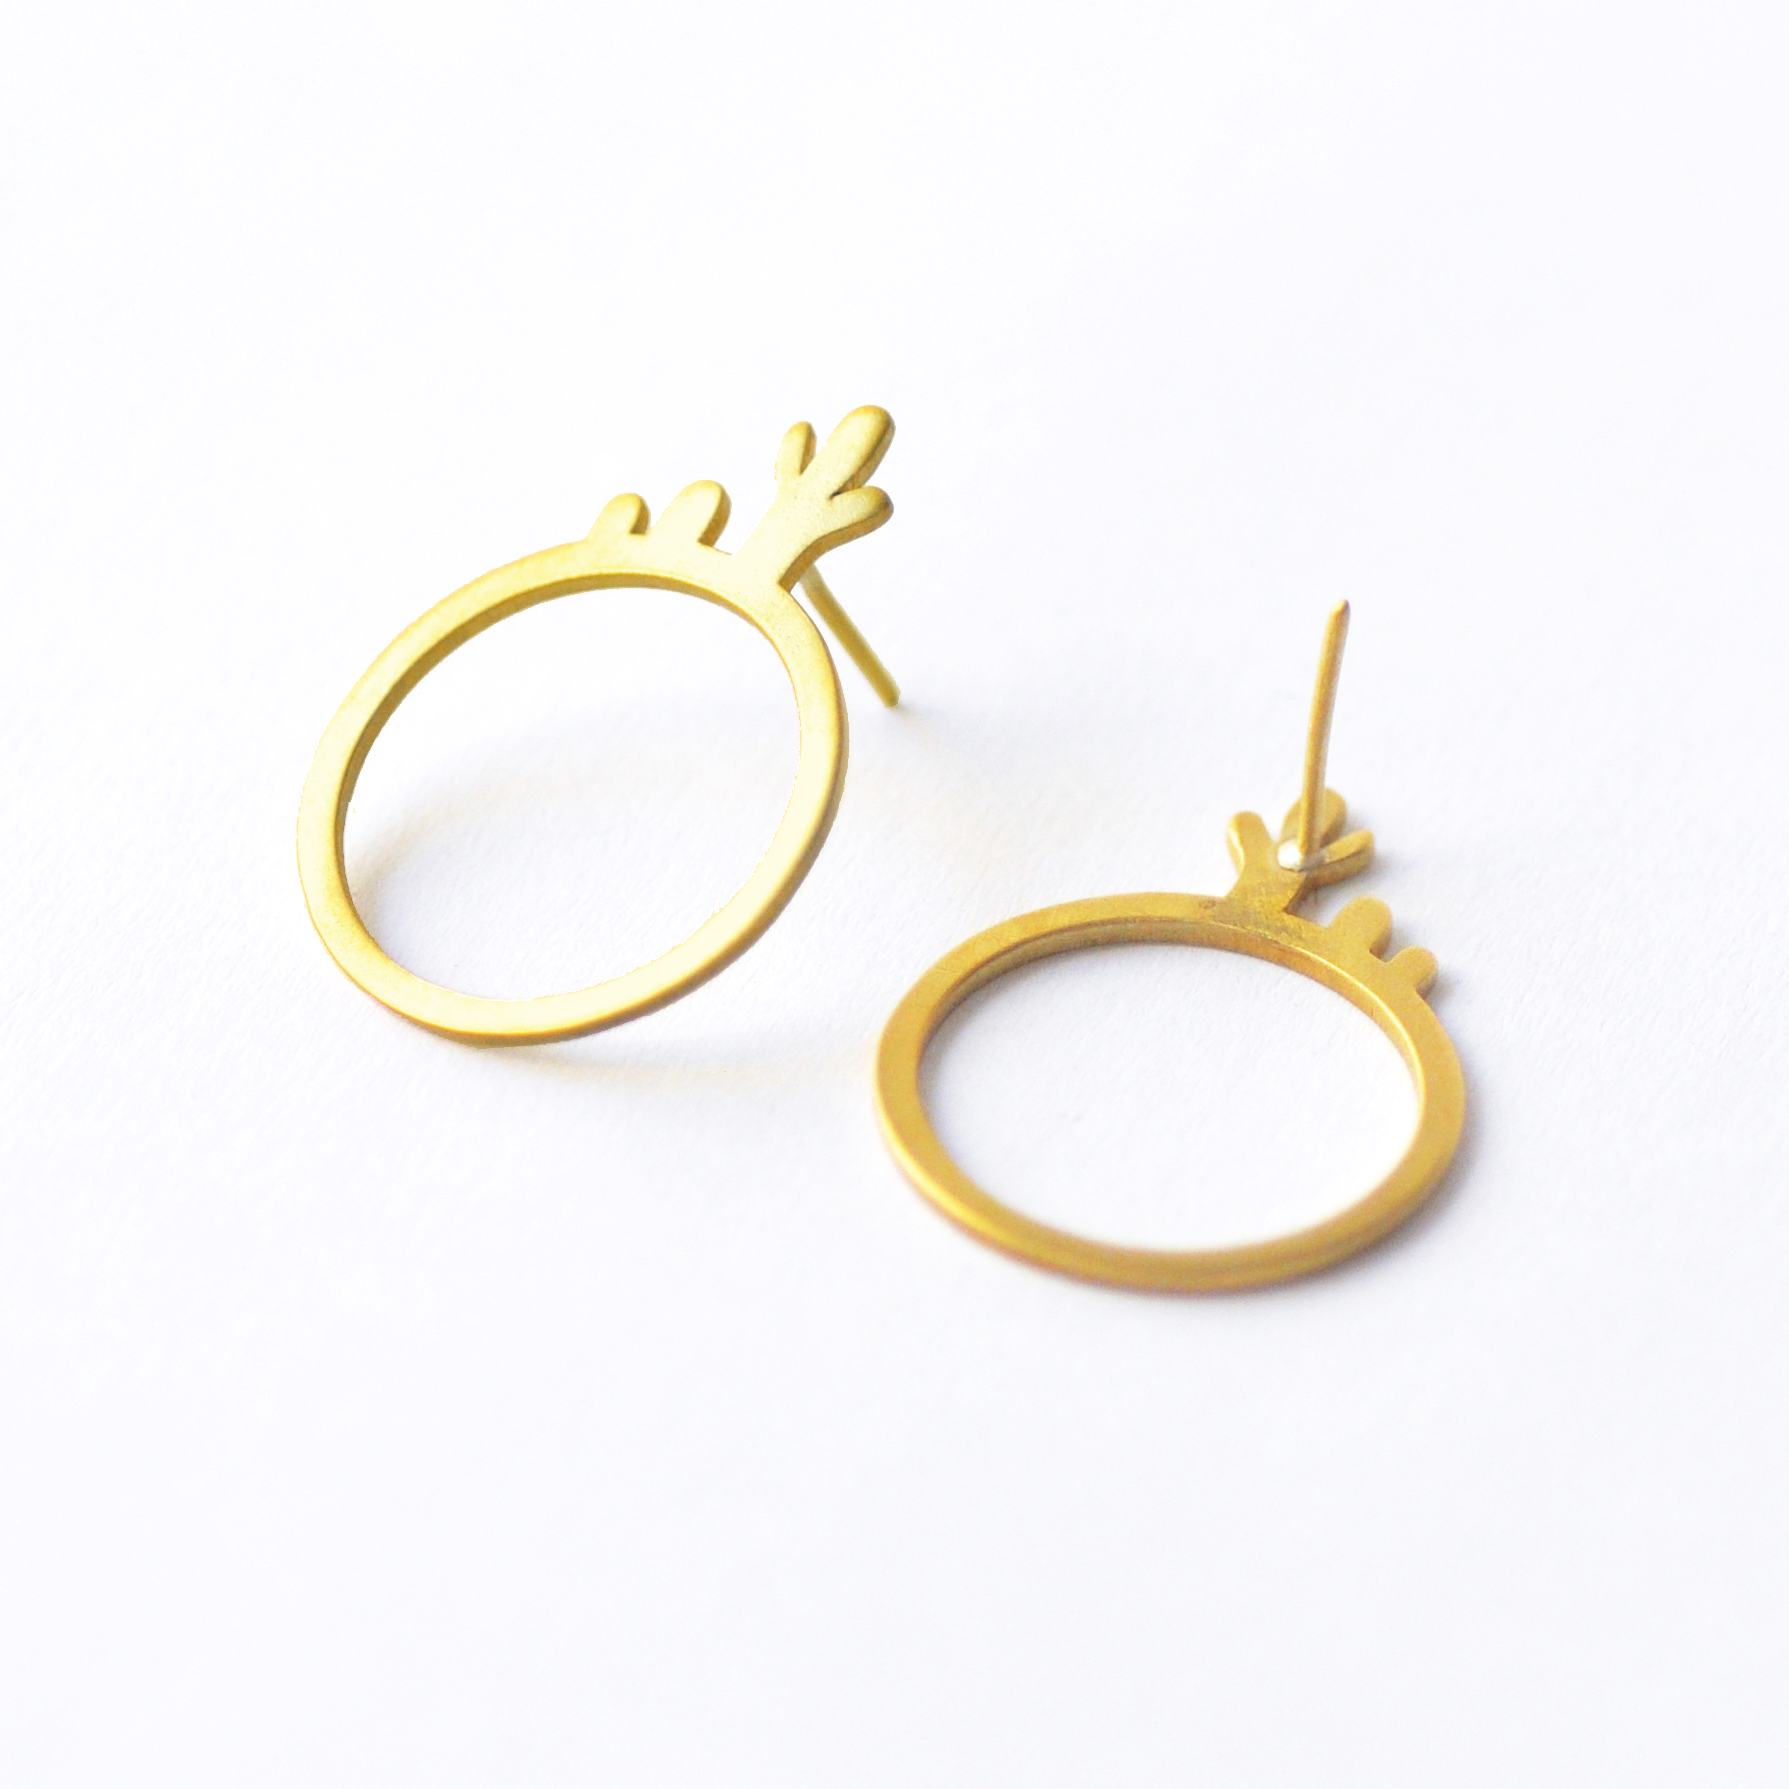 Cactus Earrings | Brincos Cacto